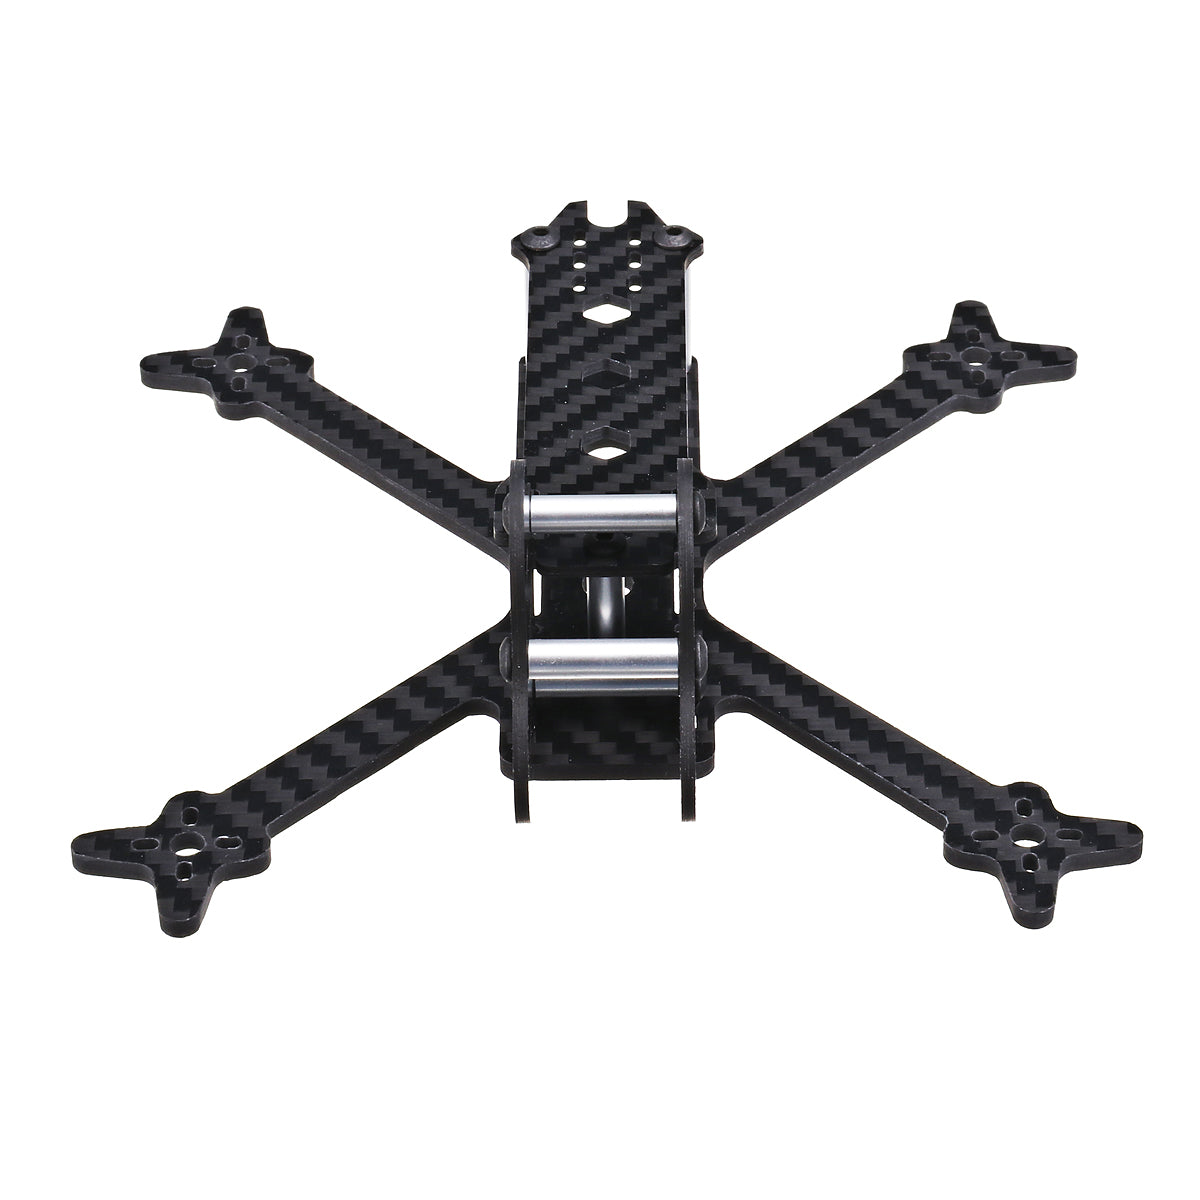 3 Inch 150mm Carbon Fiber FPV Racing Frame Kit URUAV UF4 3mm Bottom Plate for RC Drone